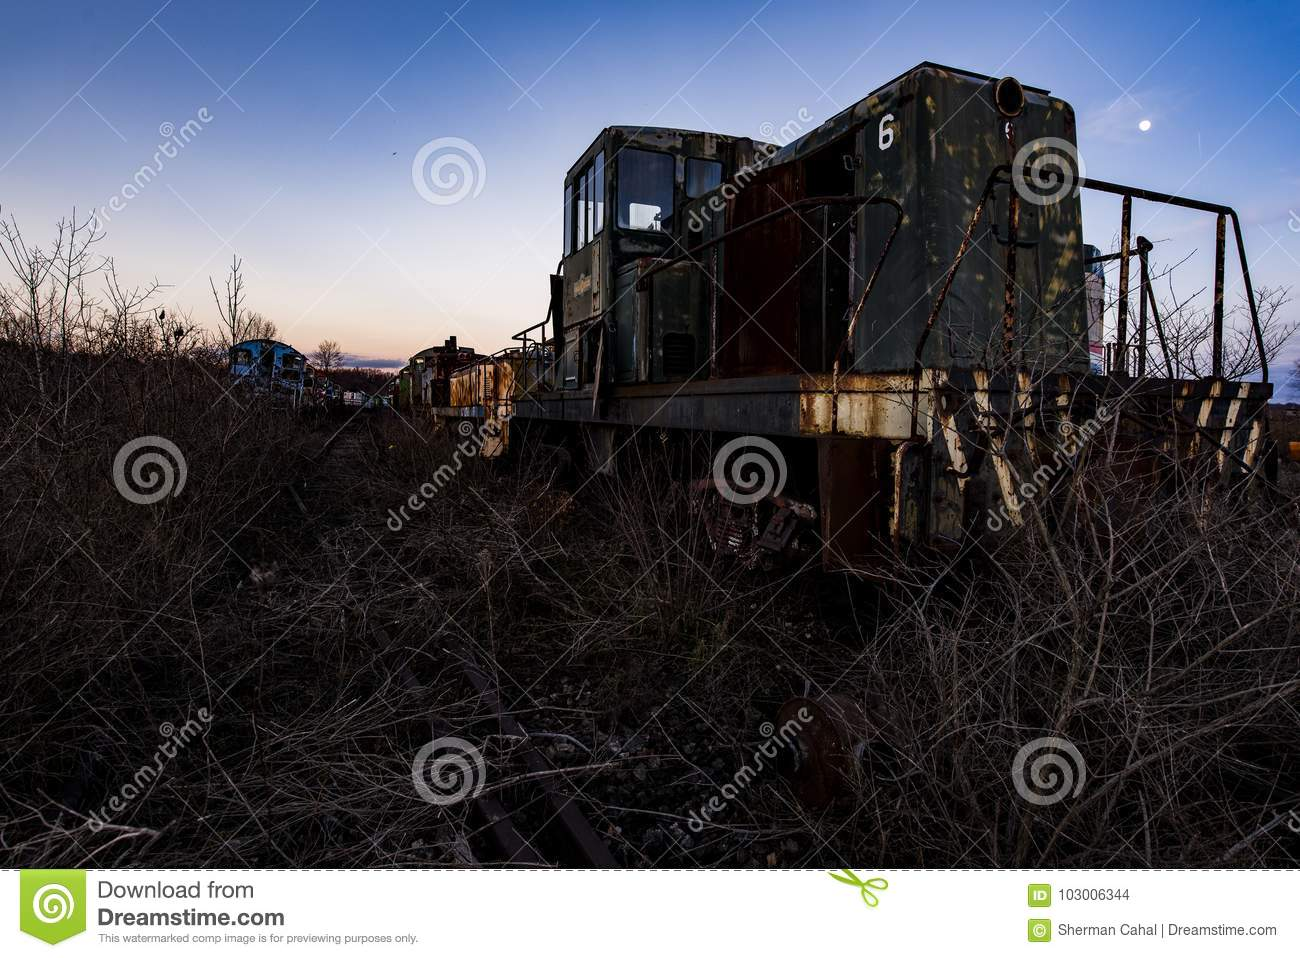 Derelict Locomotive At Sunset - Abandoned Railroad Trains